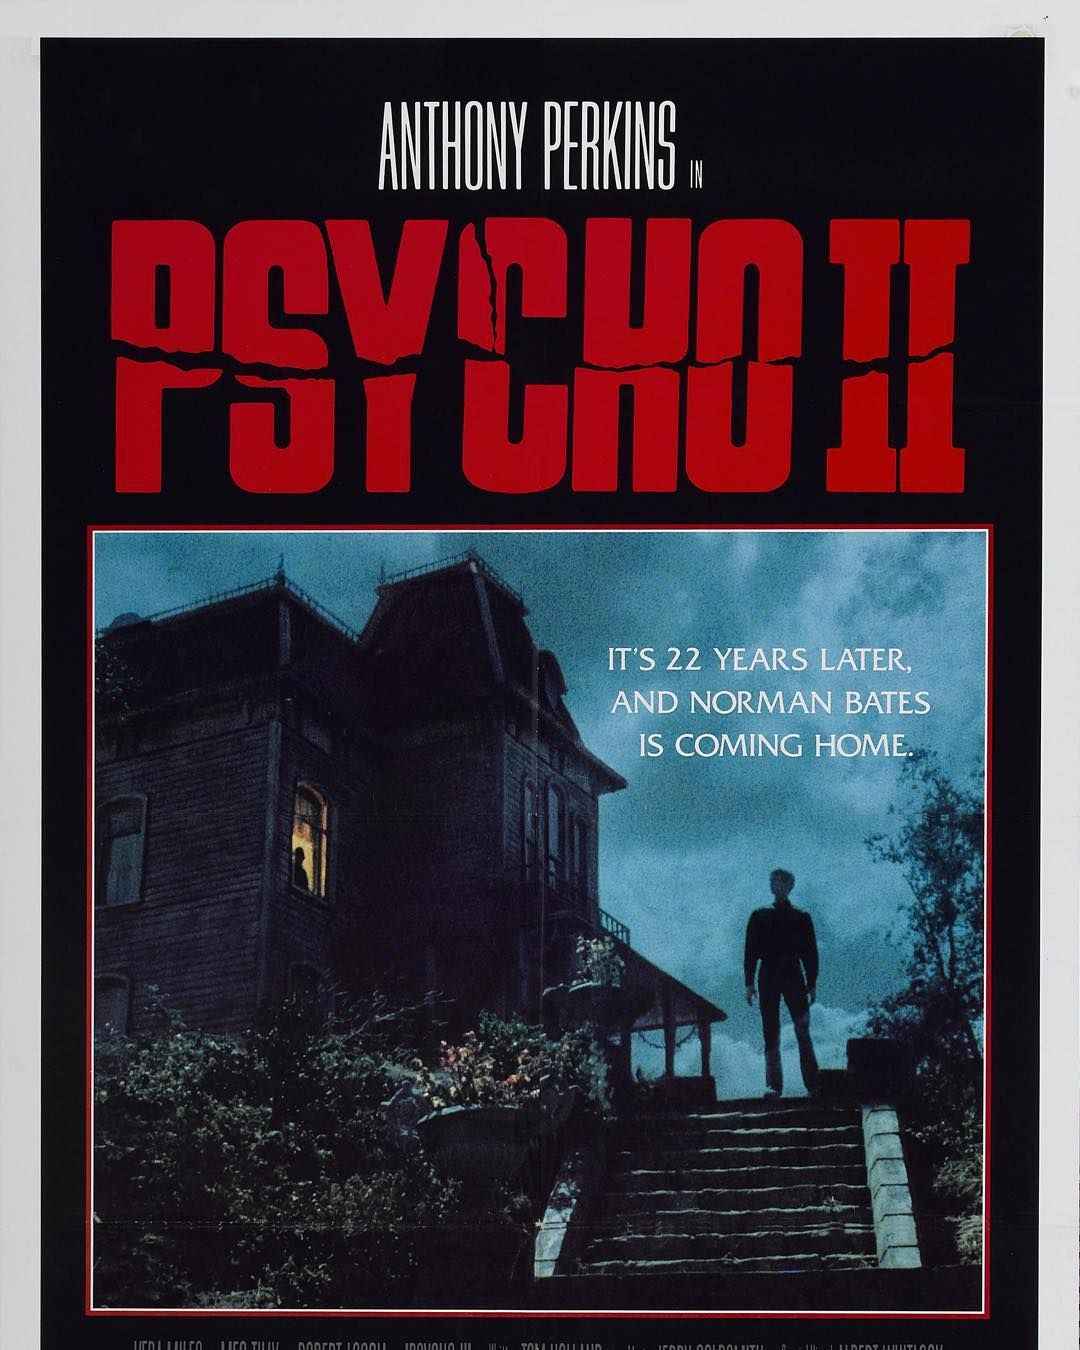 Now watching Psycho 2 22 years later Norman Bates comes home. #nowwatching #psycho2 #normanbates #anthonyperkins #alfredhitchcock #thriller #horrormovies by maximmicheal